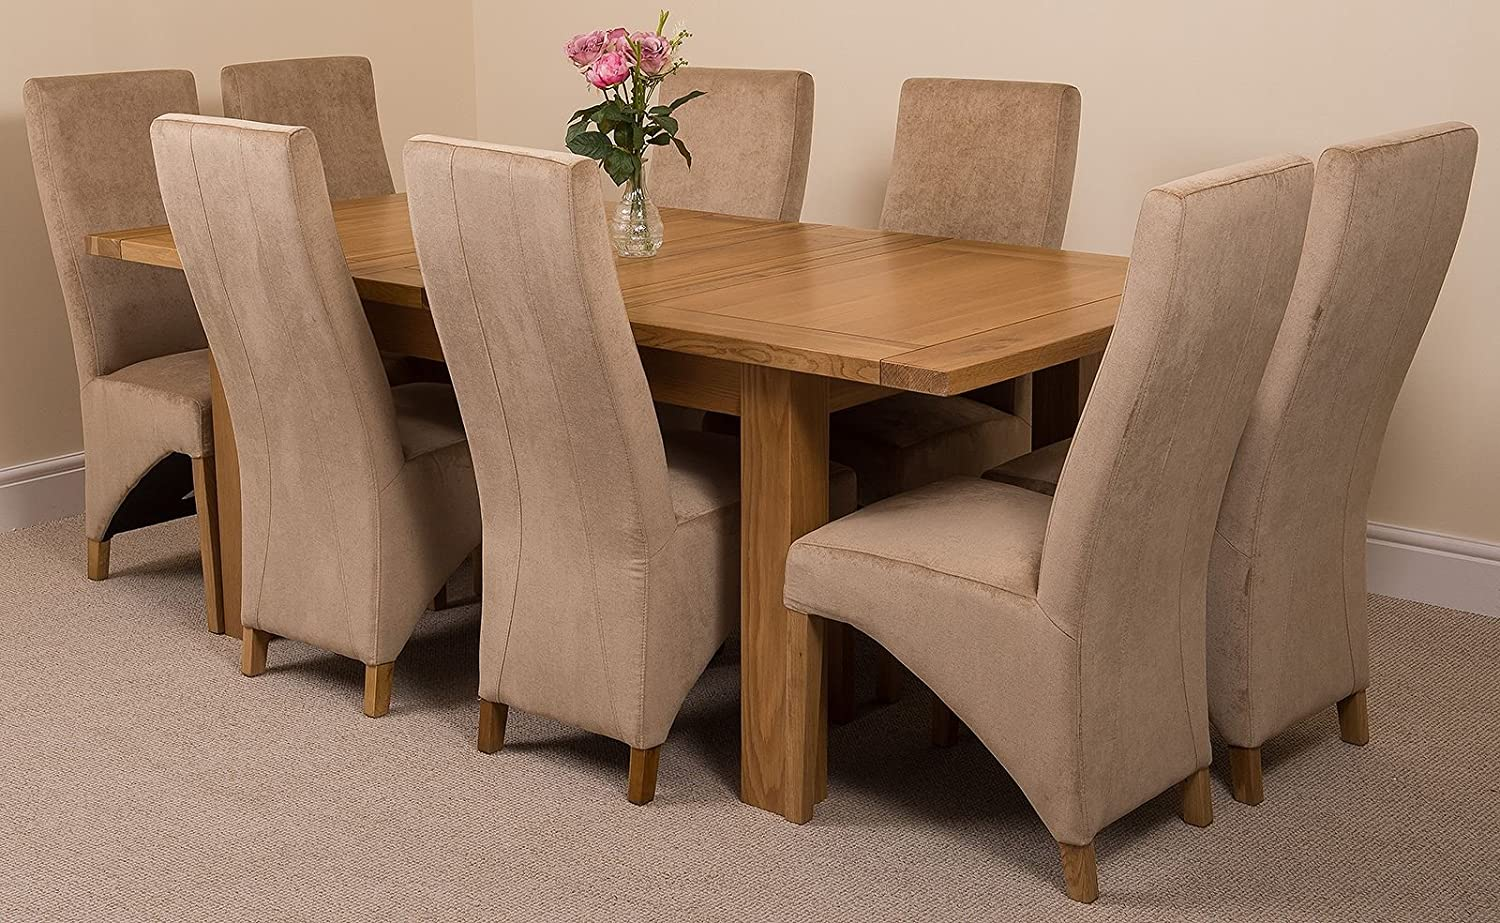 Modern furniture direct seattle extending kitchen solid oak dining set table 8 beige fabric chairs amazon co uk kitchen home